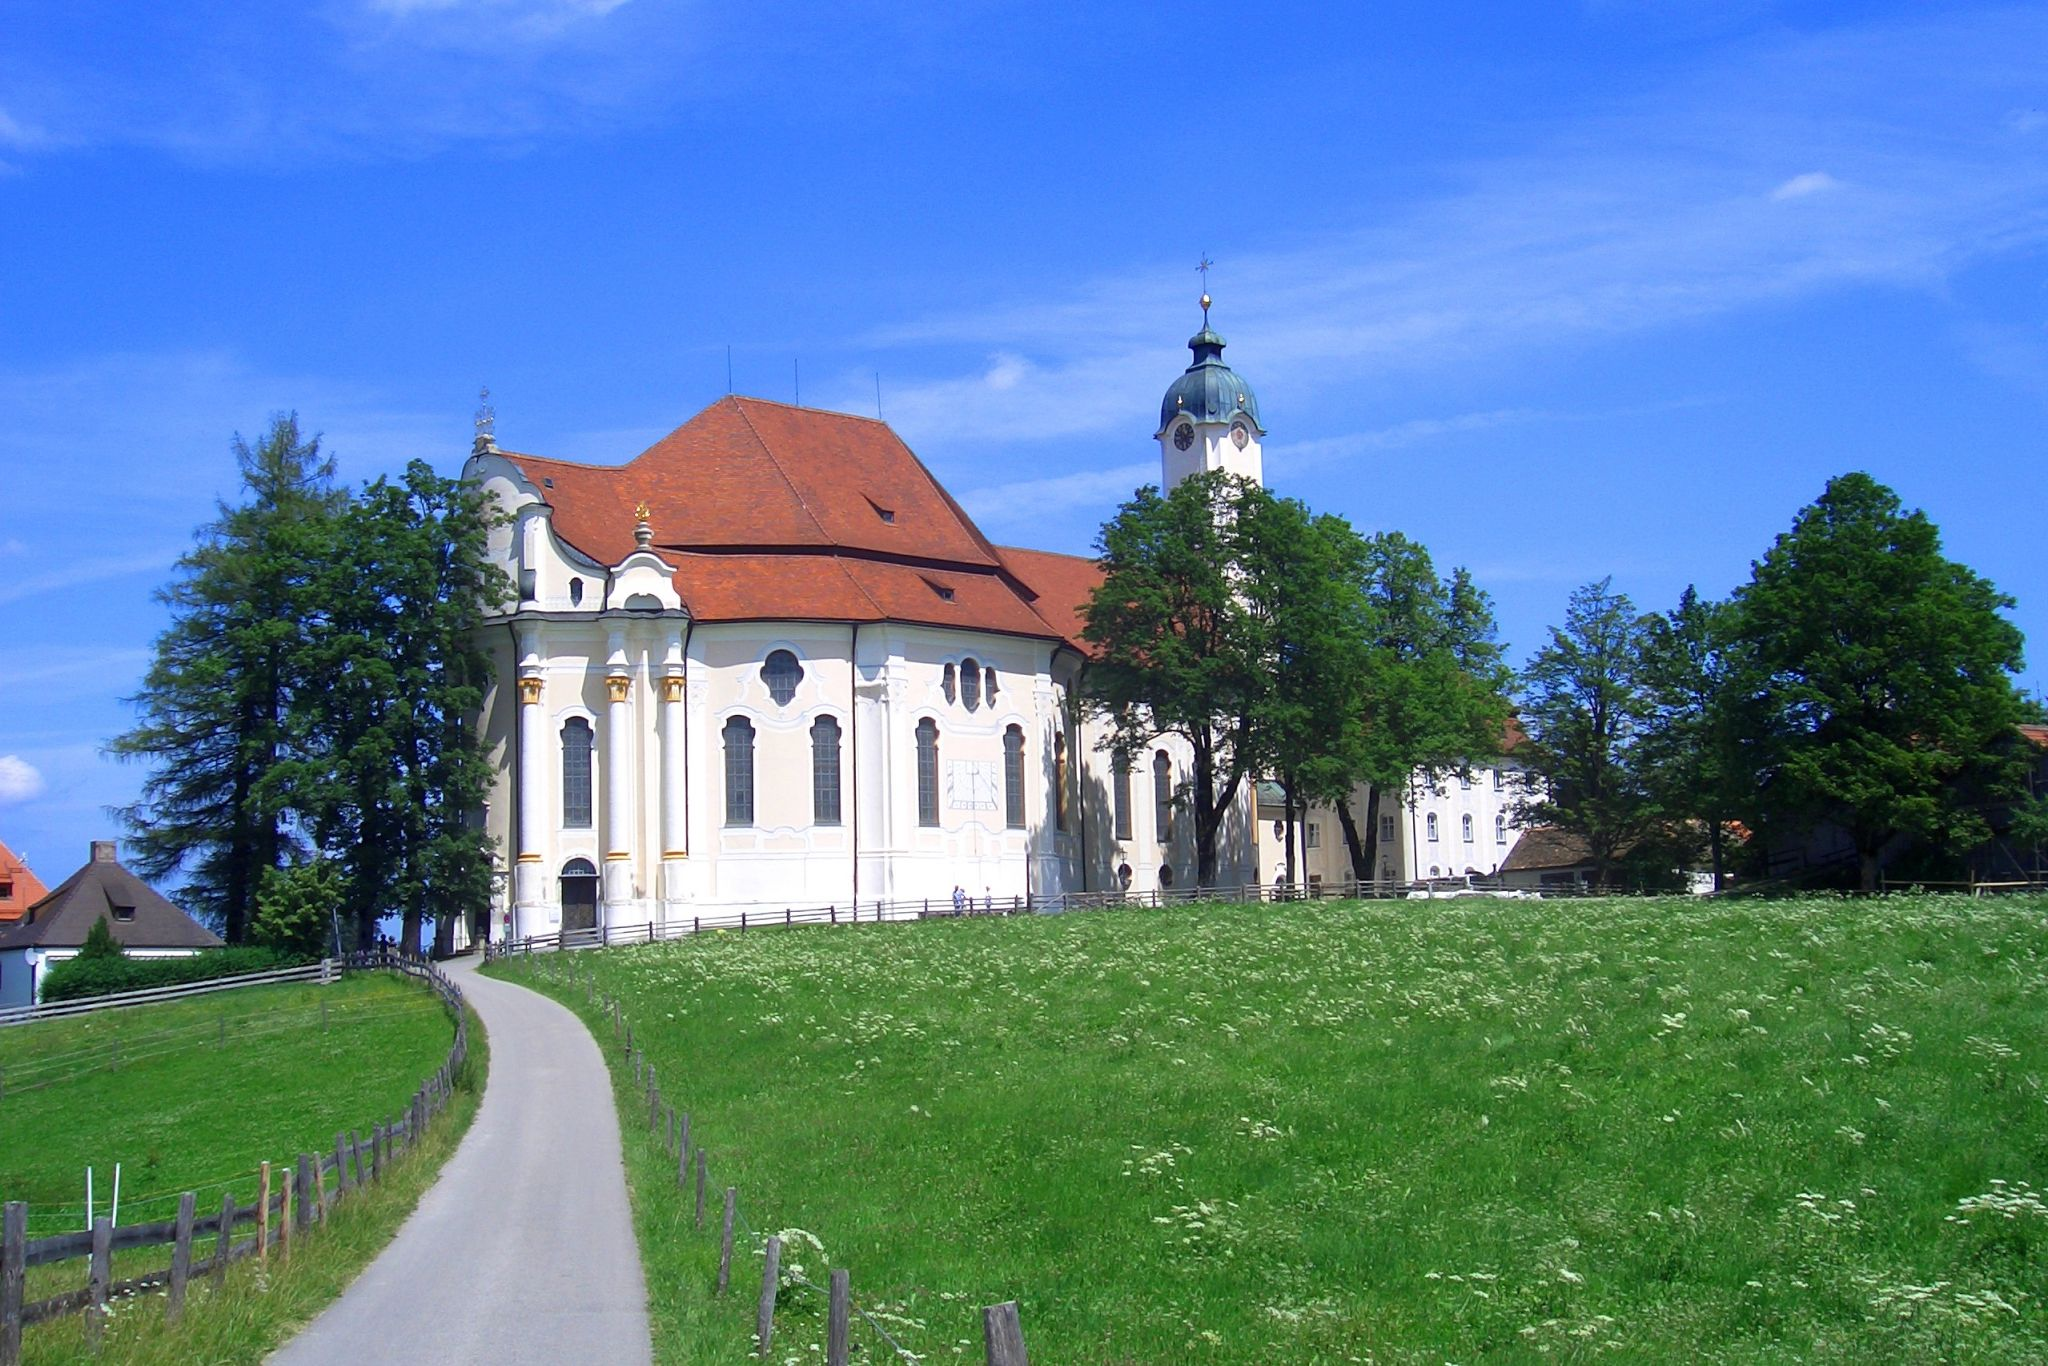 Wieskirche, Germany